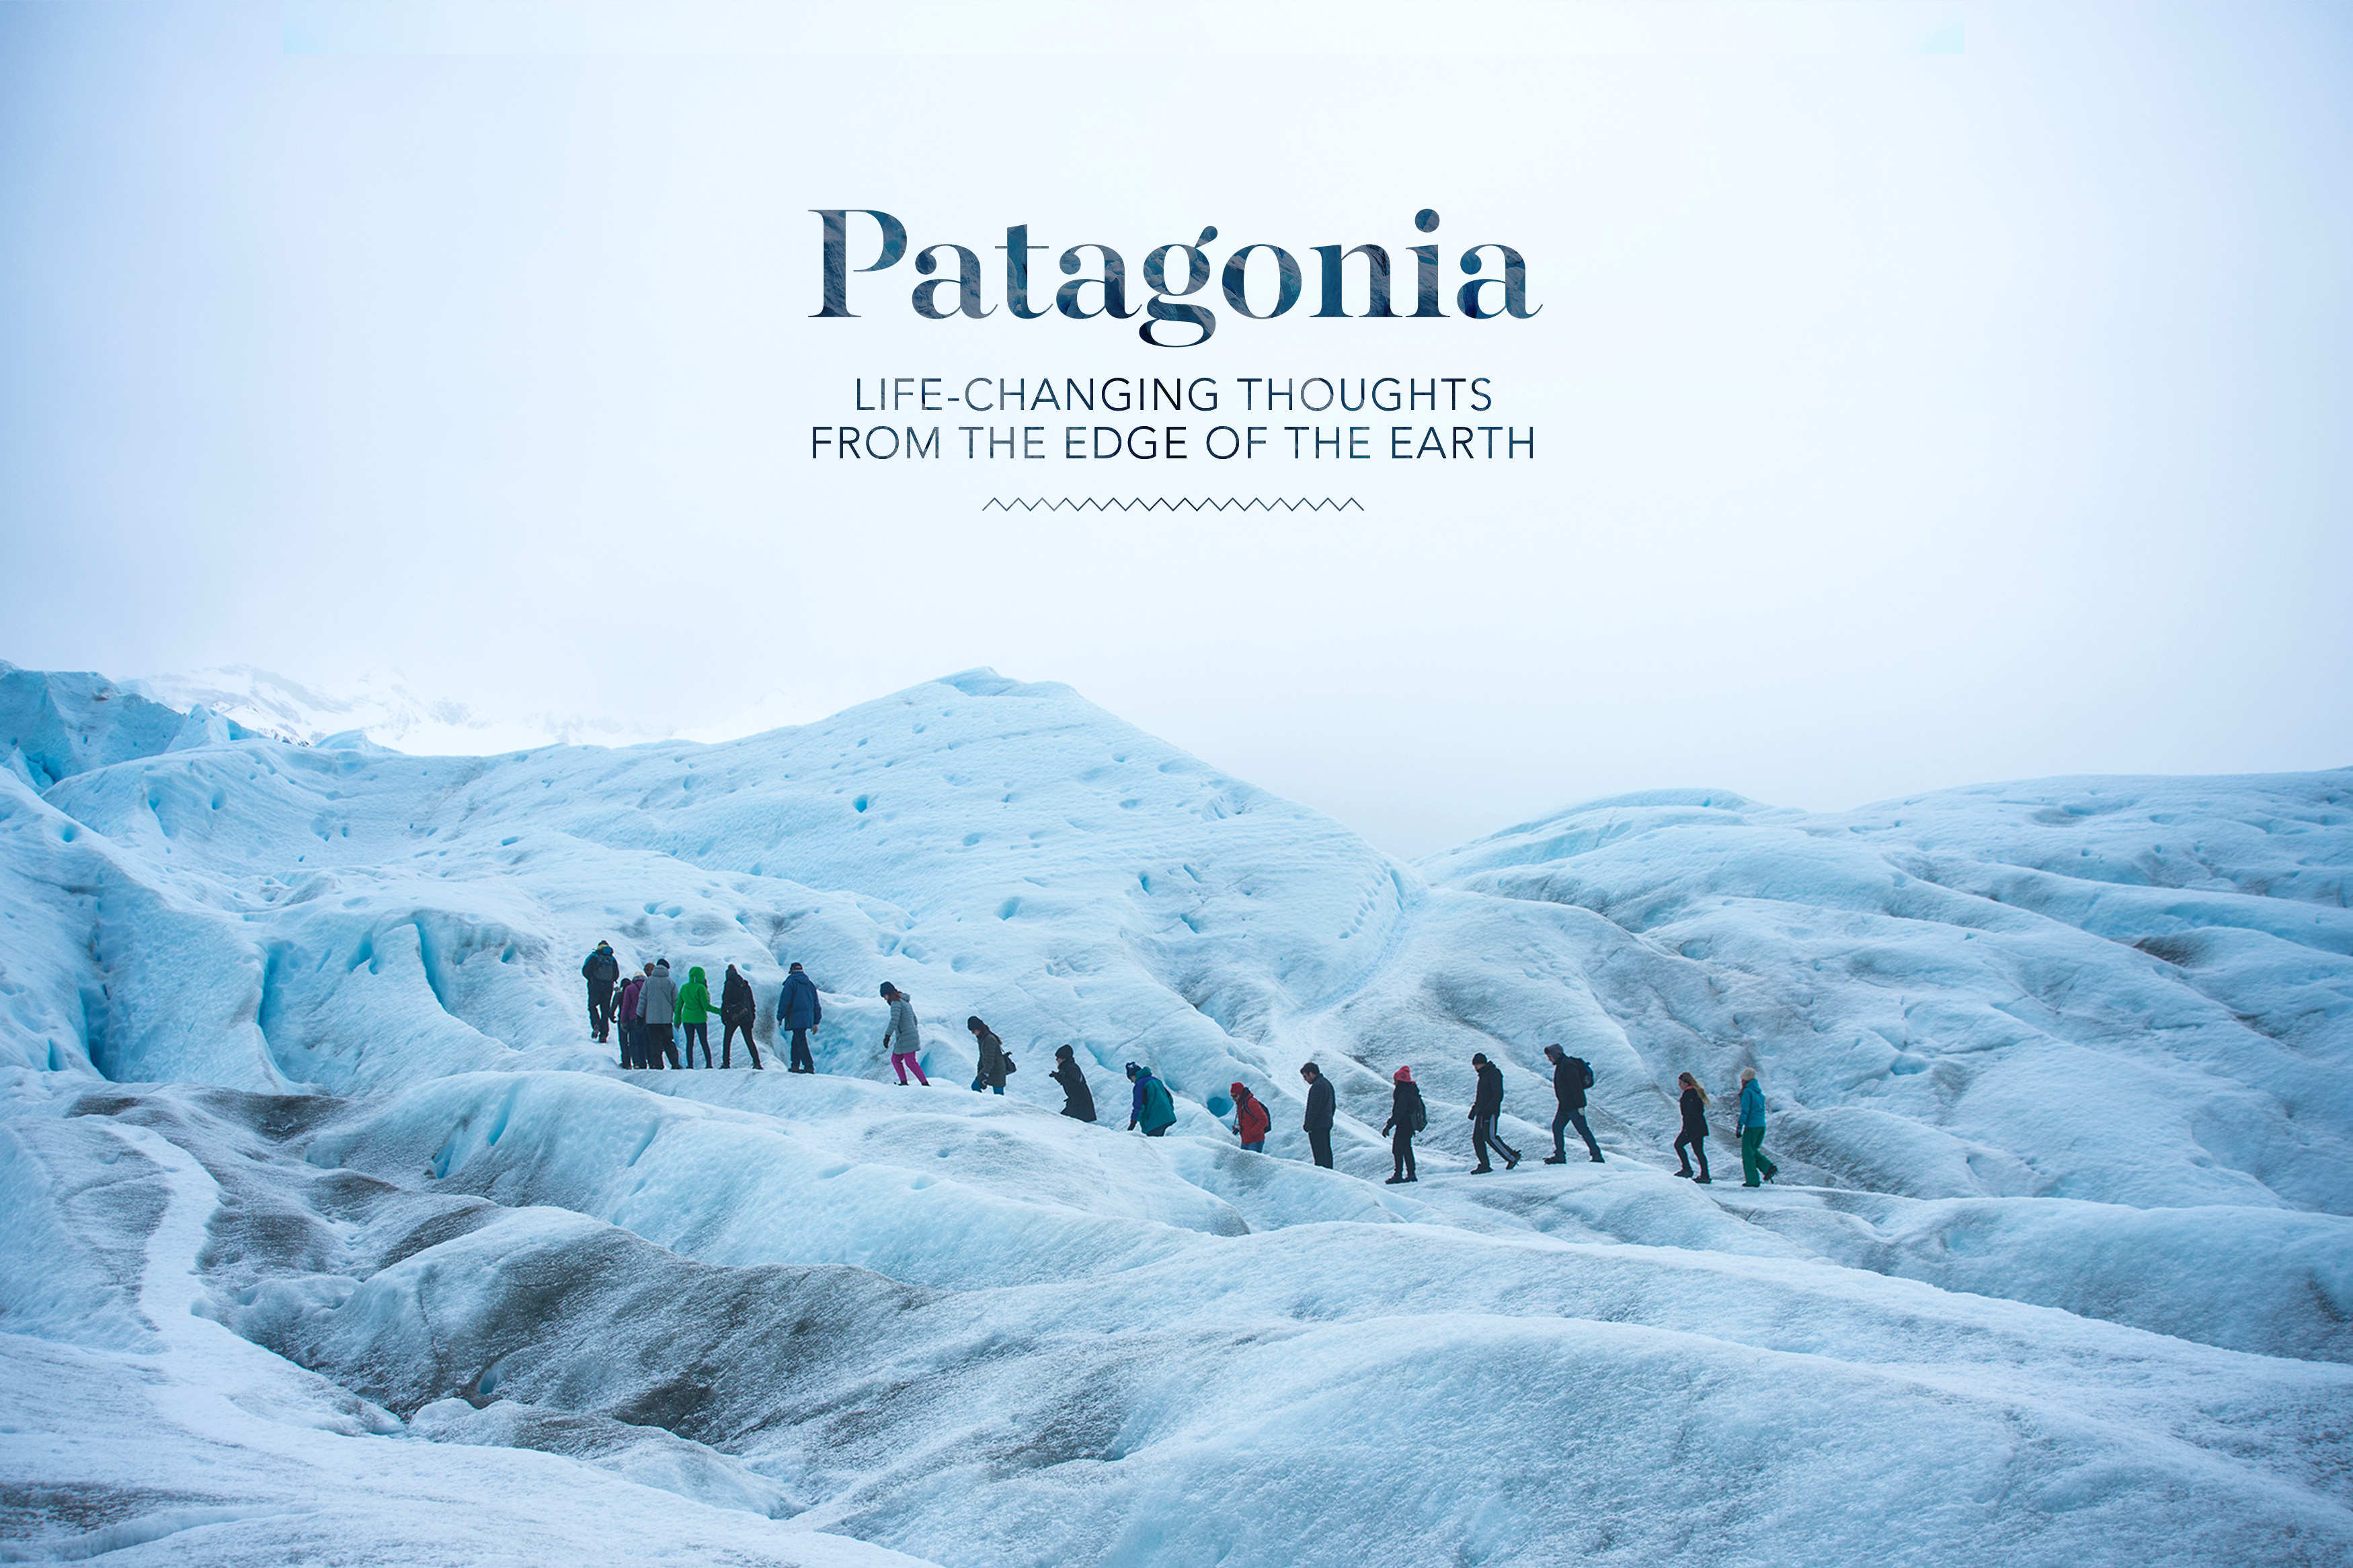 Patagonia South America >> Patagonia: Life-changing Thoughts From The Edge Of The Earth